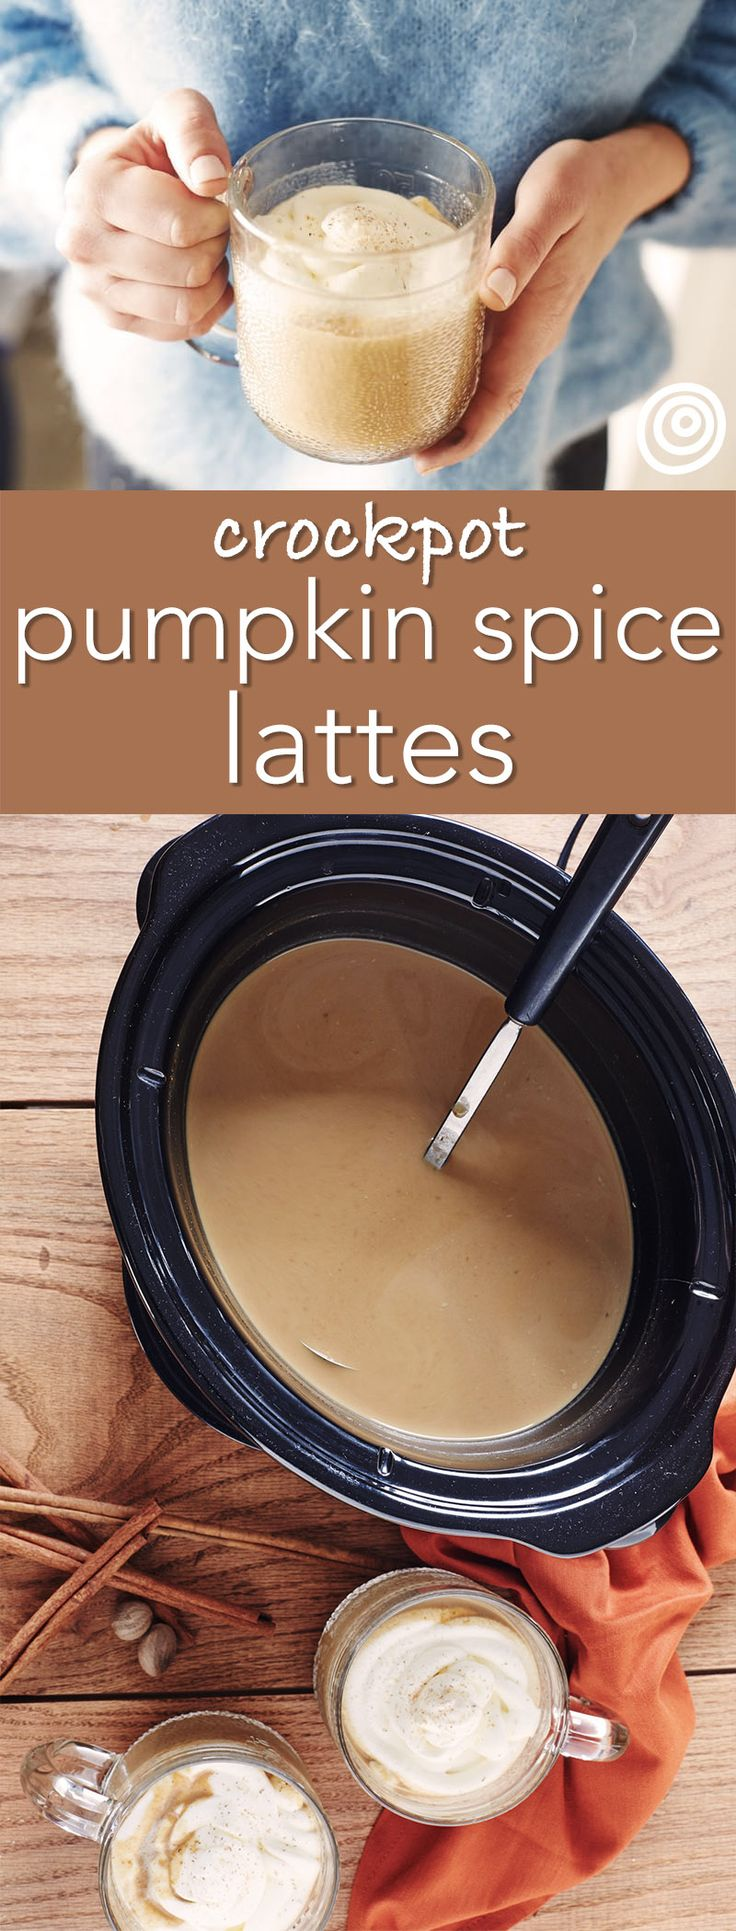 Homemade Slow Cooker or Crockpot Pumpkin Spice Lattes Recipe. An excellent idea for warm drinks for Thanksgiving in fall, Christmas in winter, cold weather, or just the holidays in general. Perfect for a crowd or large group. It's so EASY to make this at home - there's no reason to go out to Starbucks! No espresso machine required. A drip coffee maker is just fine.